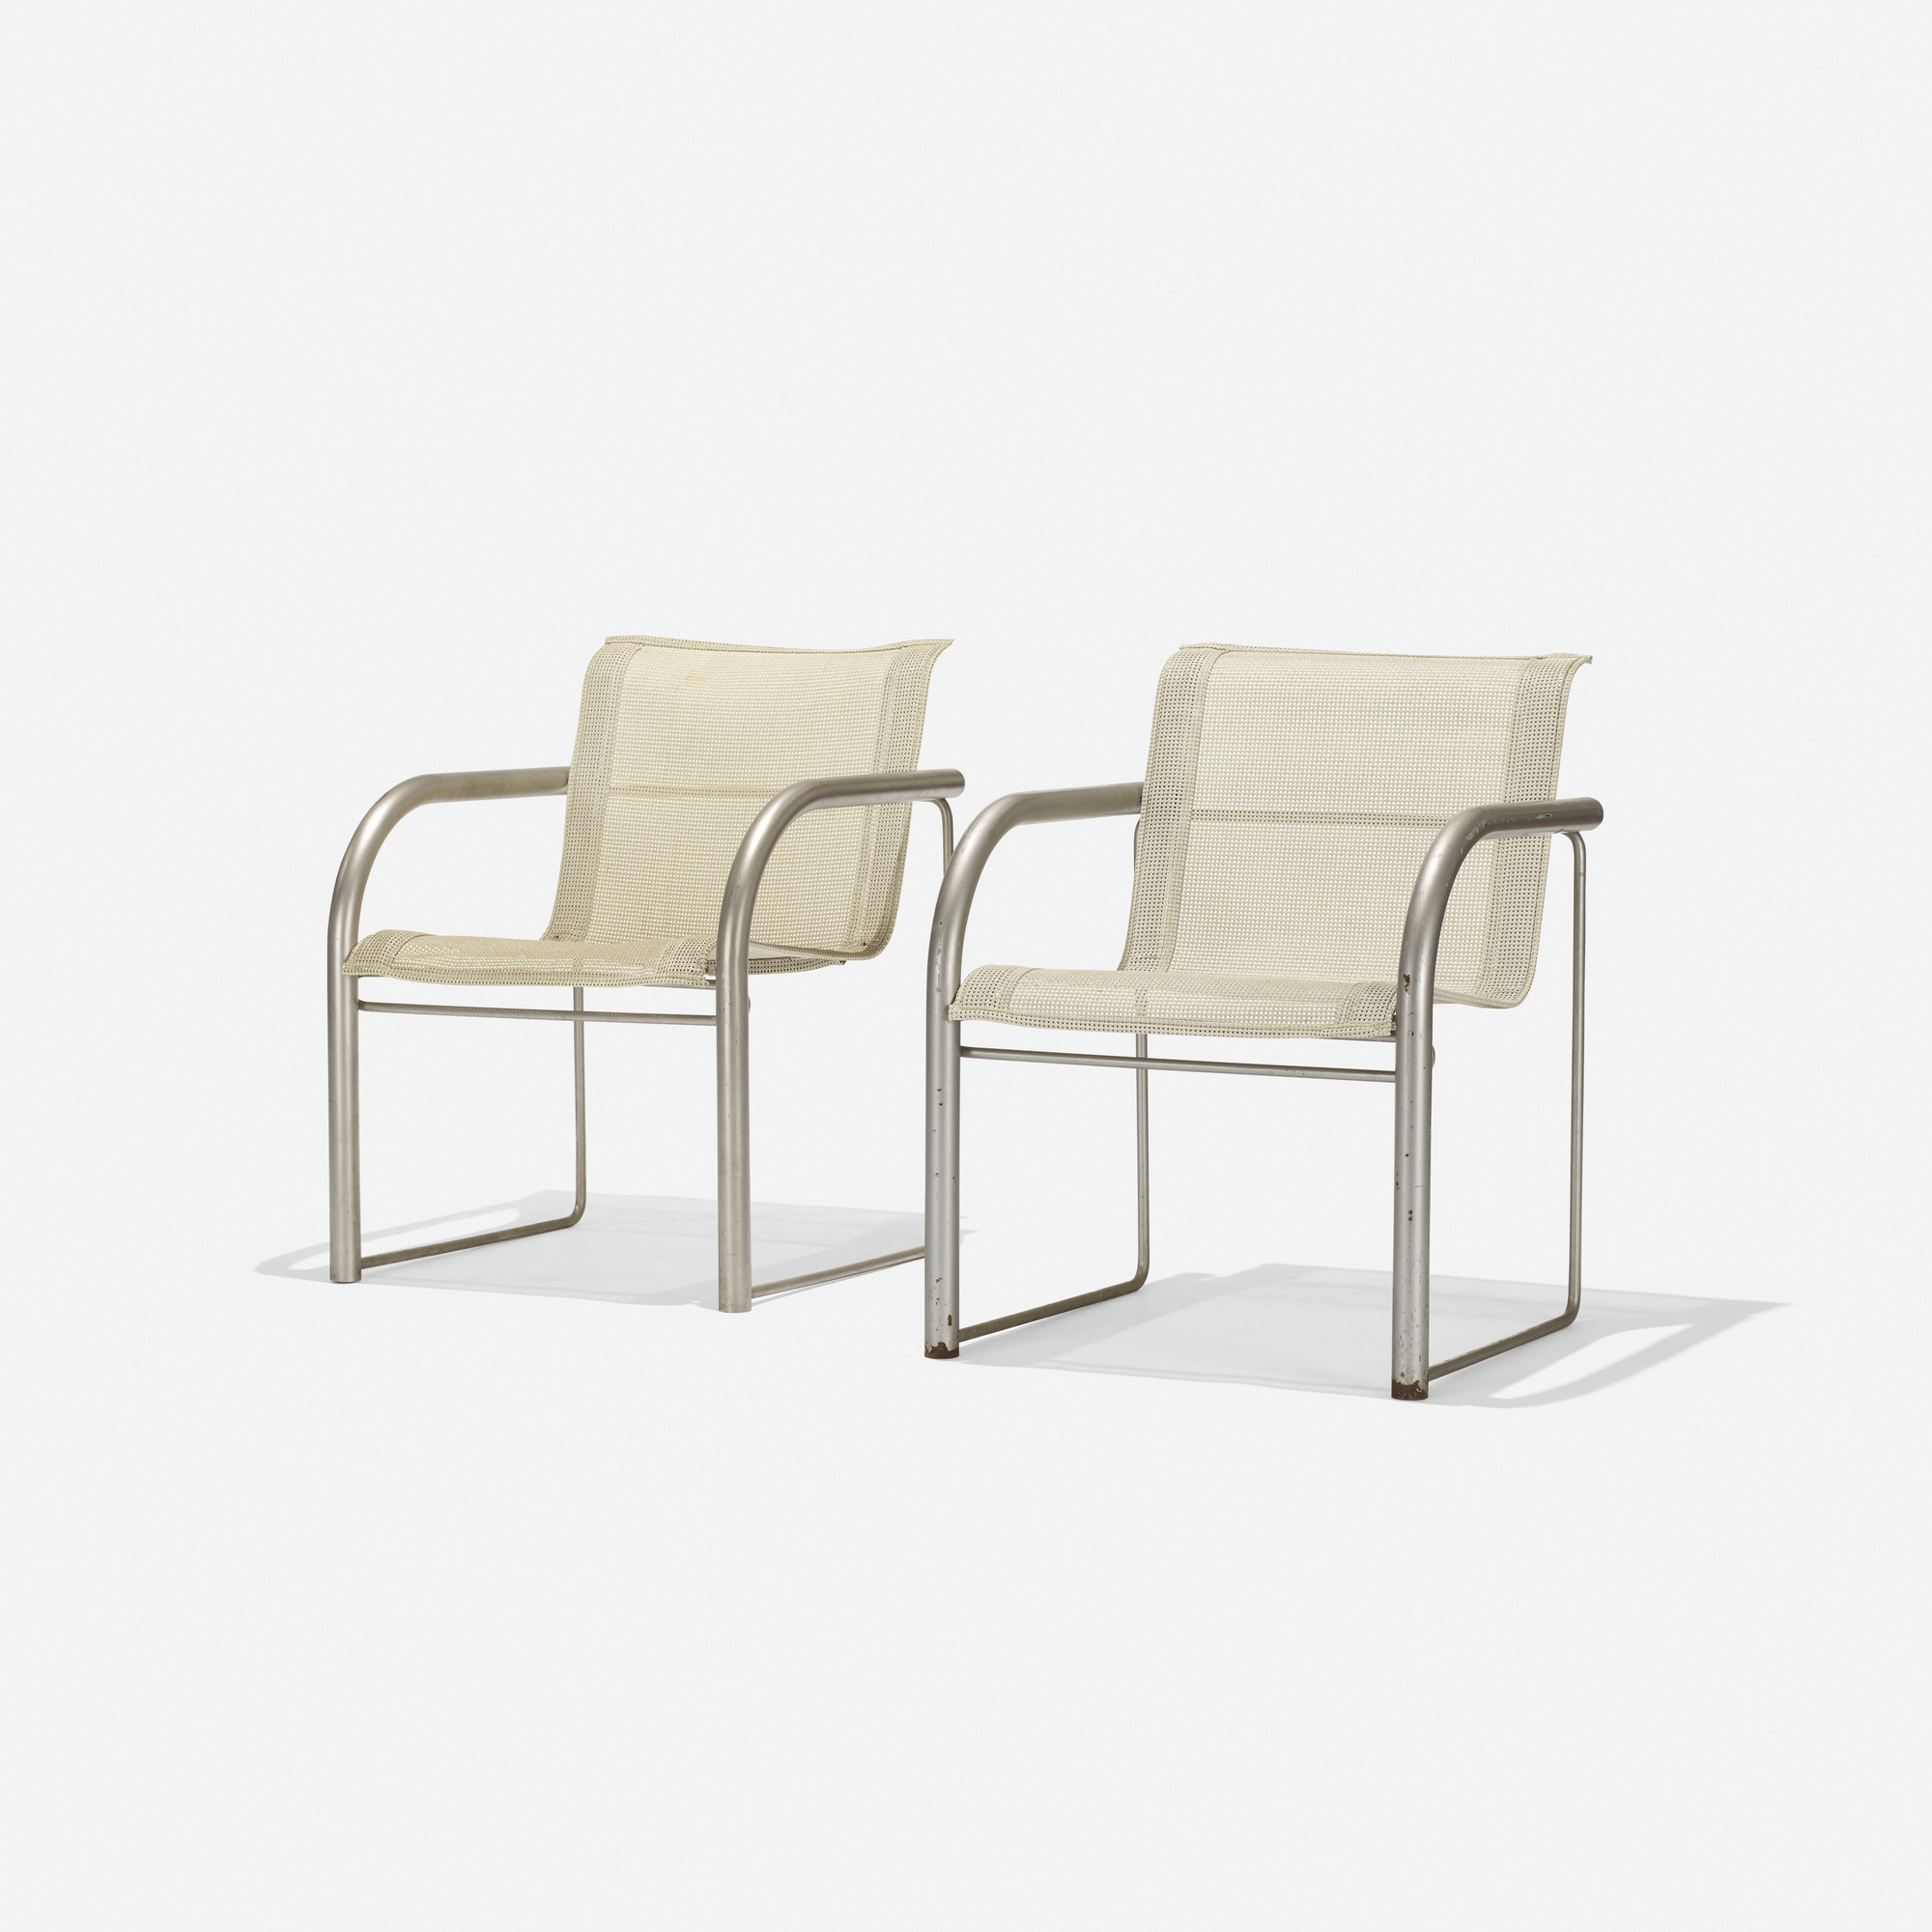 richard schultz  prototype contour dining chairs pair  the  -   richard schultz  prototype contour dining chairs pair ( of )